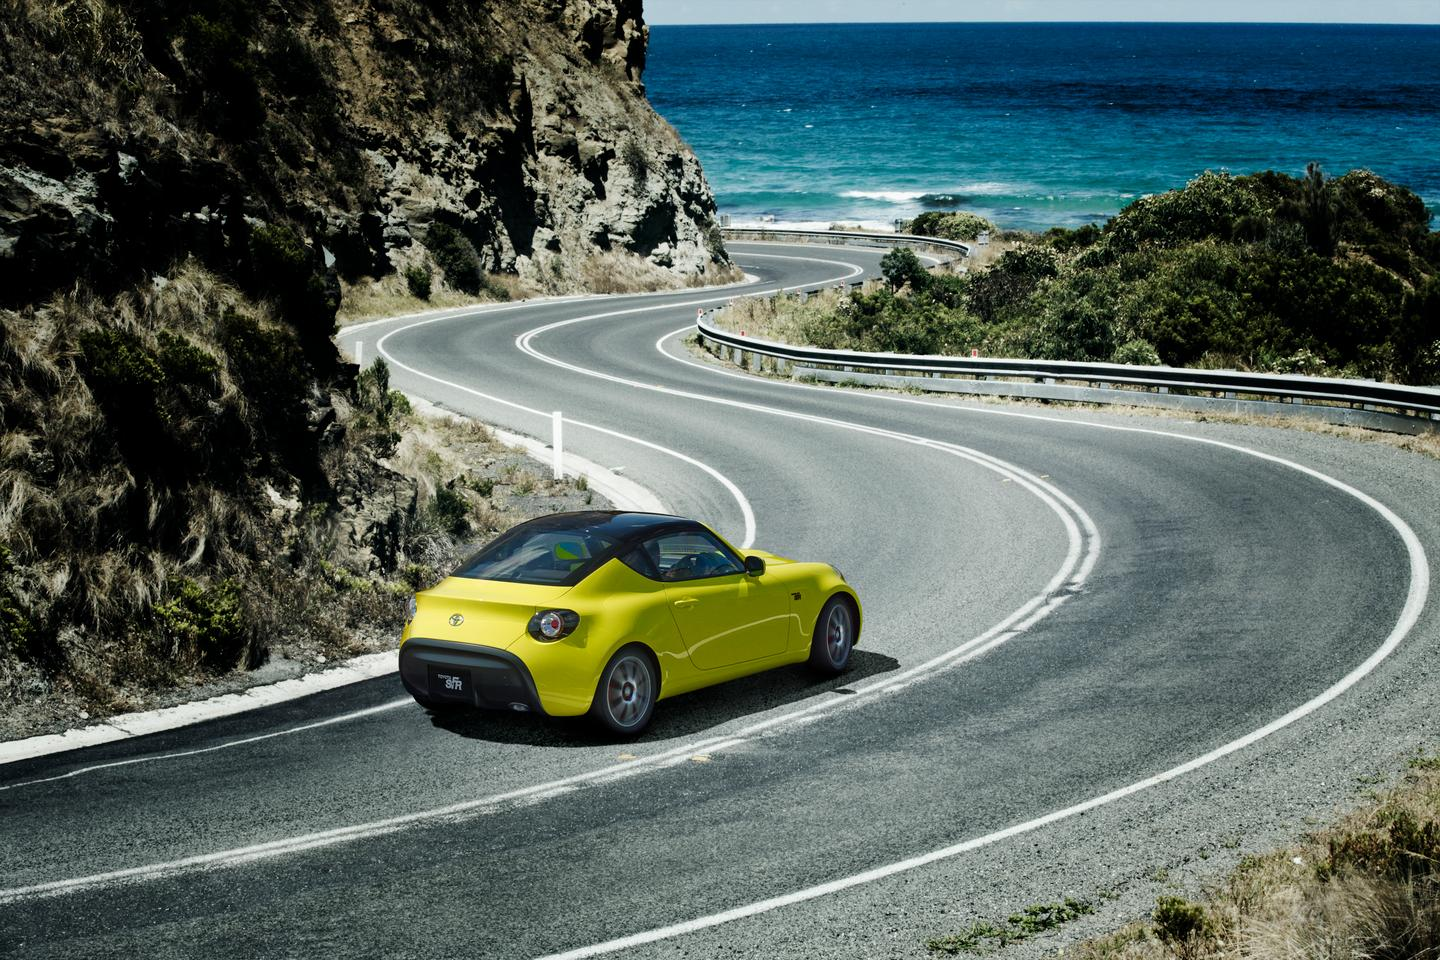 The S-FR features light, compact design, independent suspension and a manual transmission